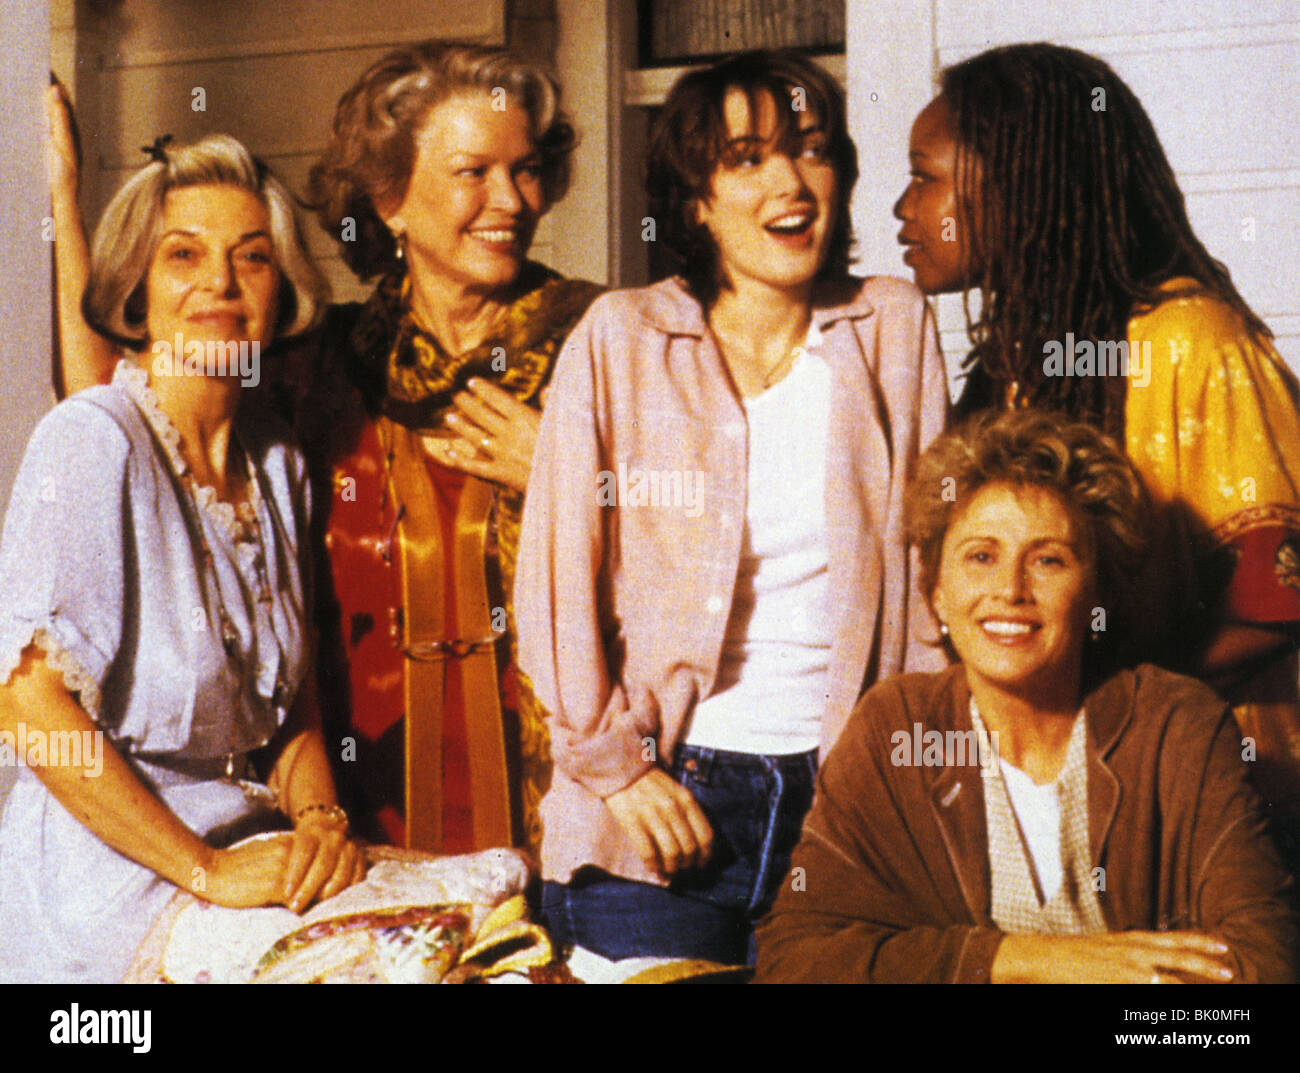 HOW TO MAKE AN AMERICAN QUILT - 1995 Universal/Amblin film with ... : an american quilt - Adamdwight.com